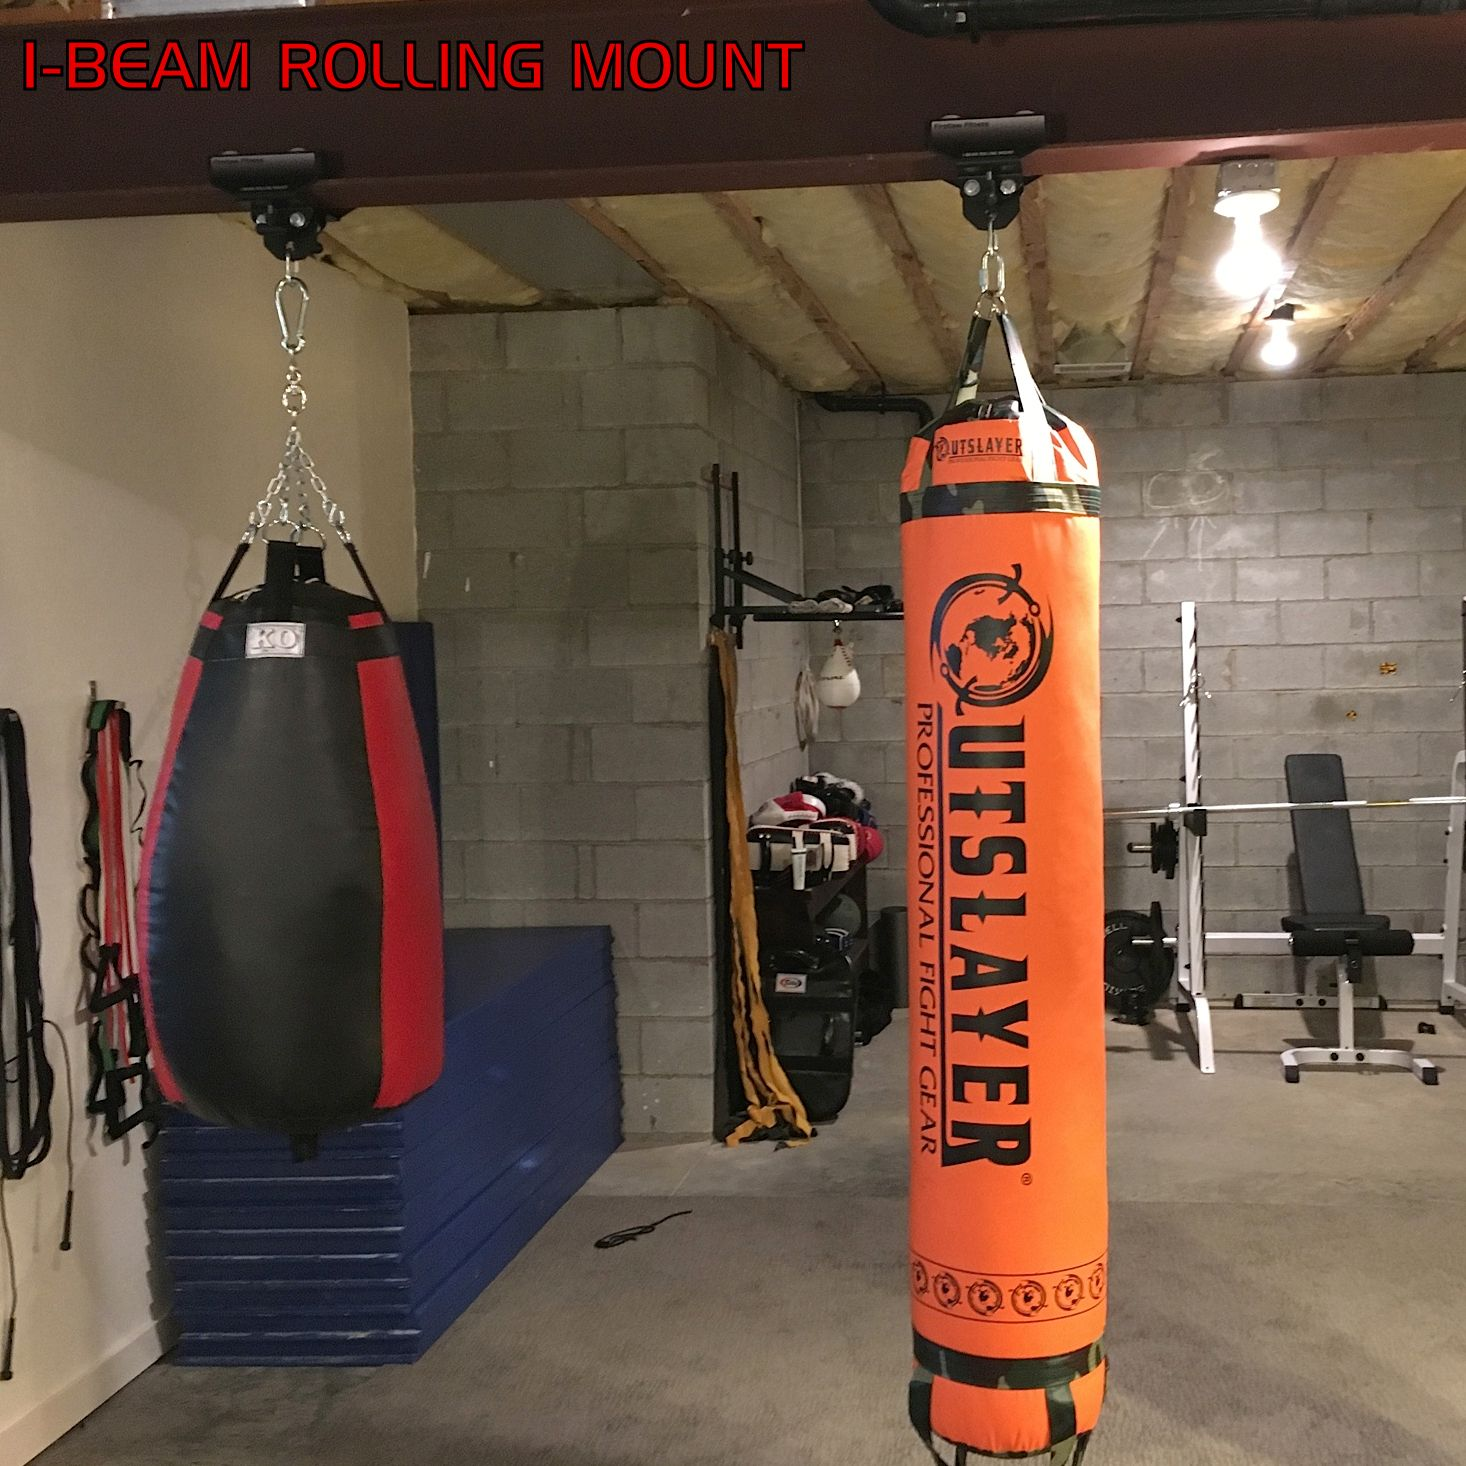 Home Gym Heavy Bag: The Firstlaw Fitness I-Beam Rolling Mount For Heavy